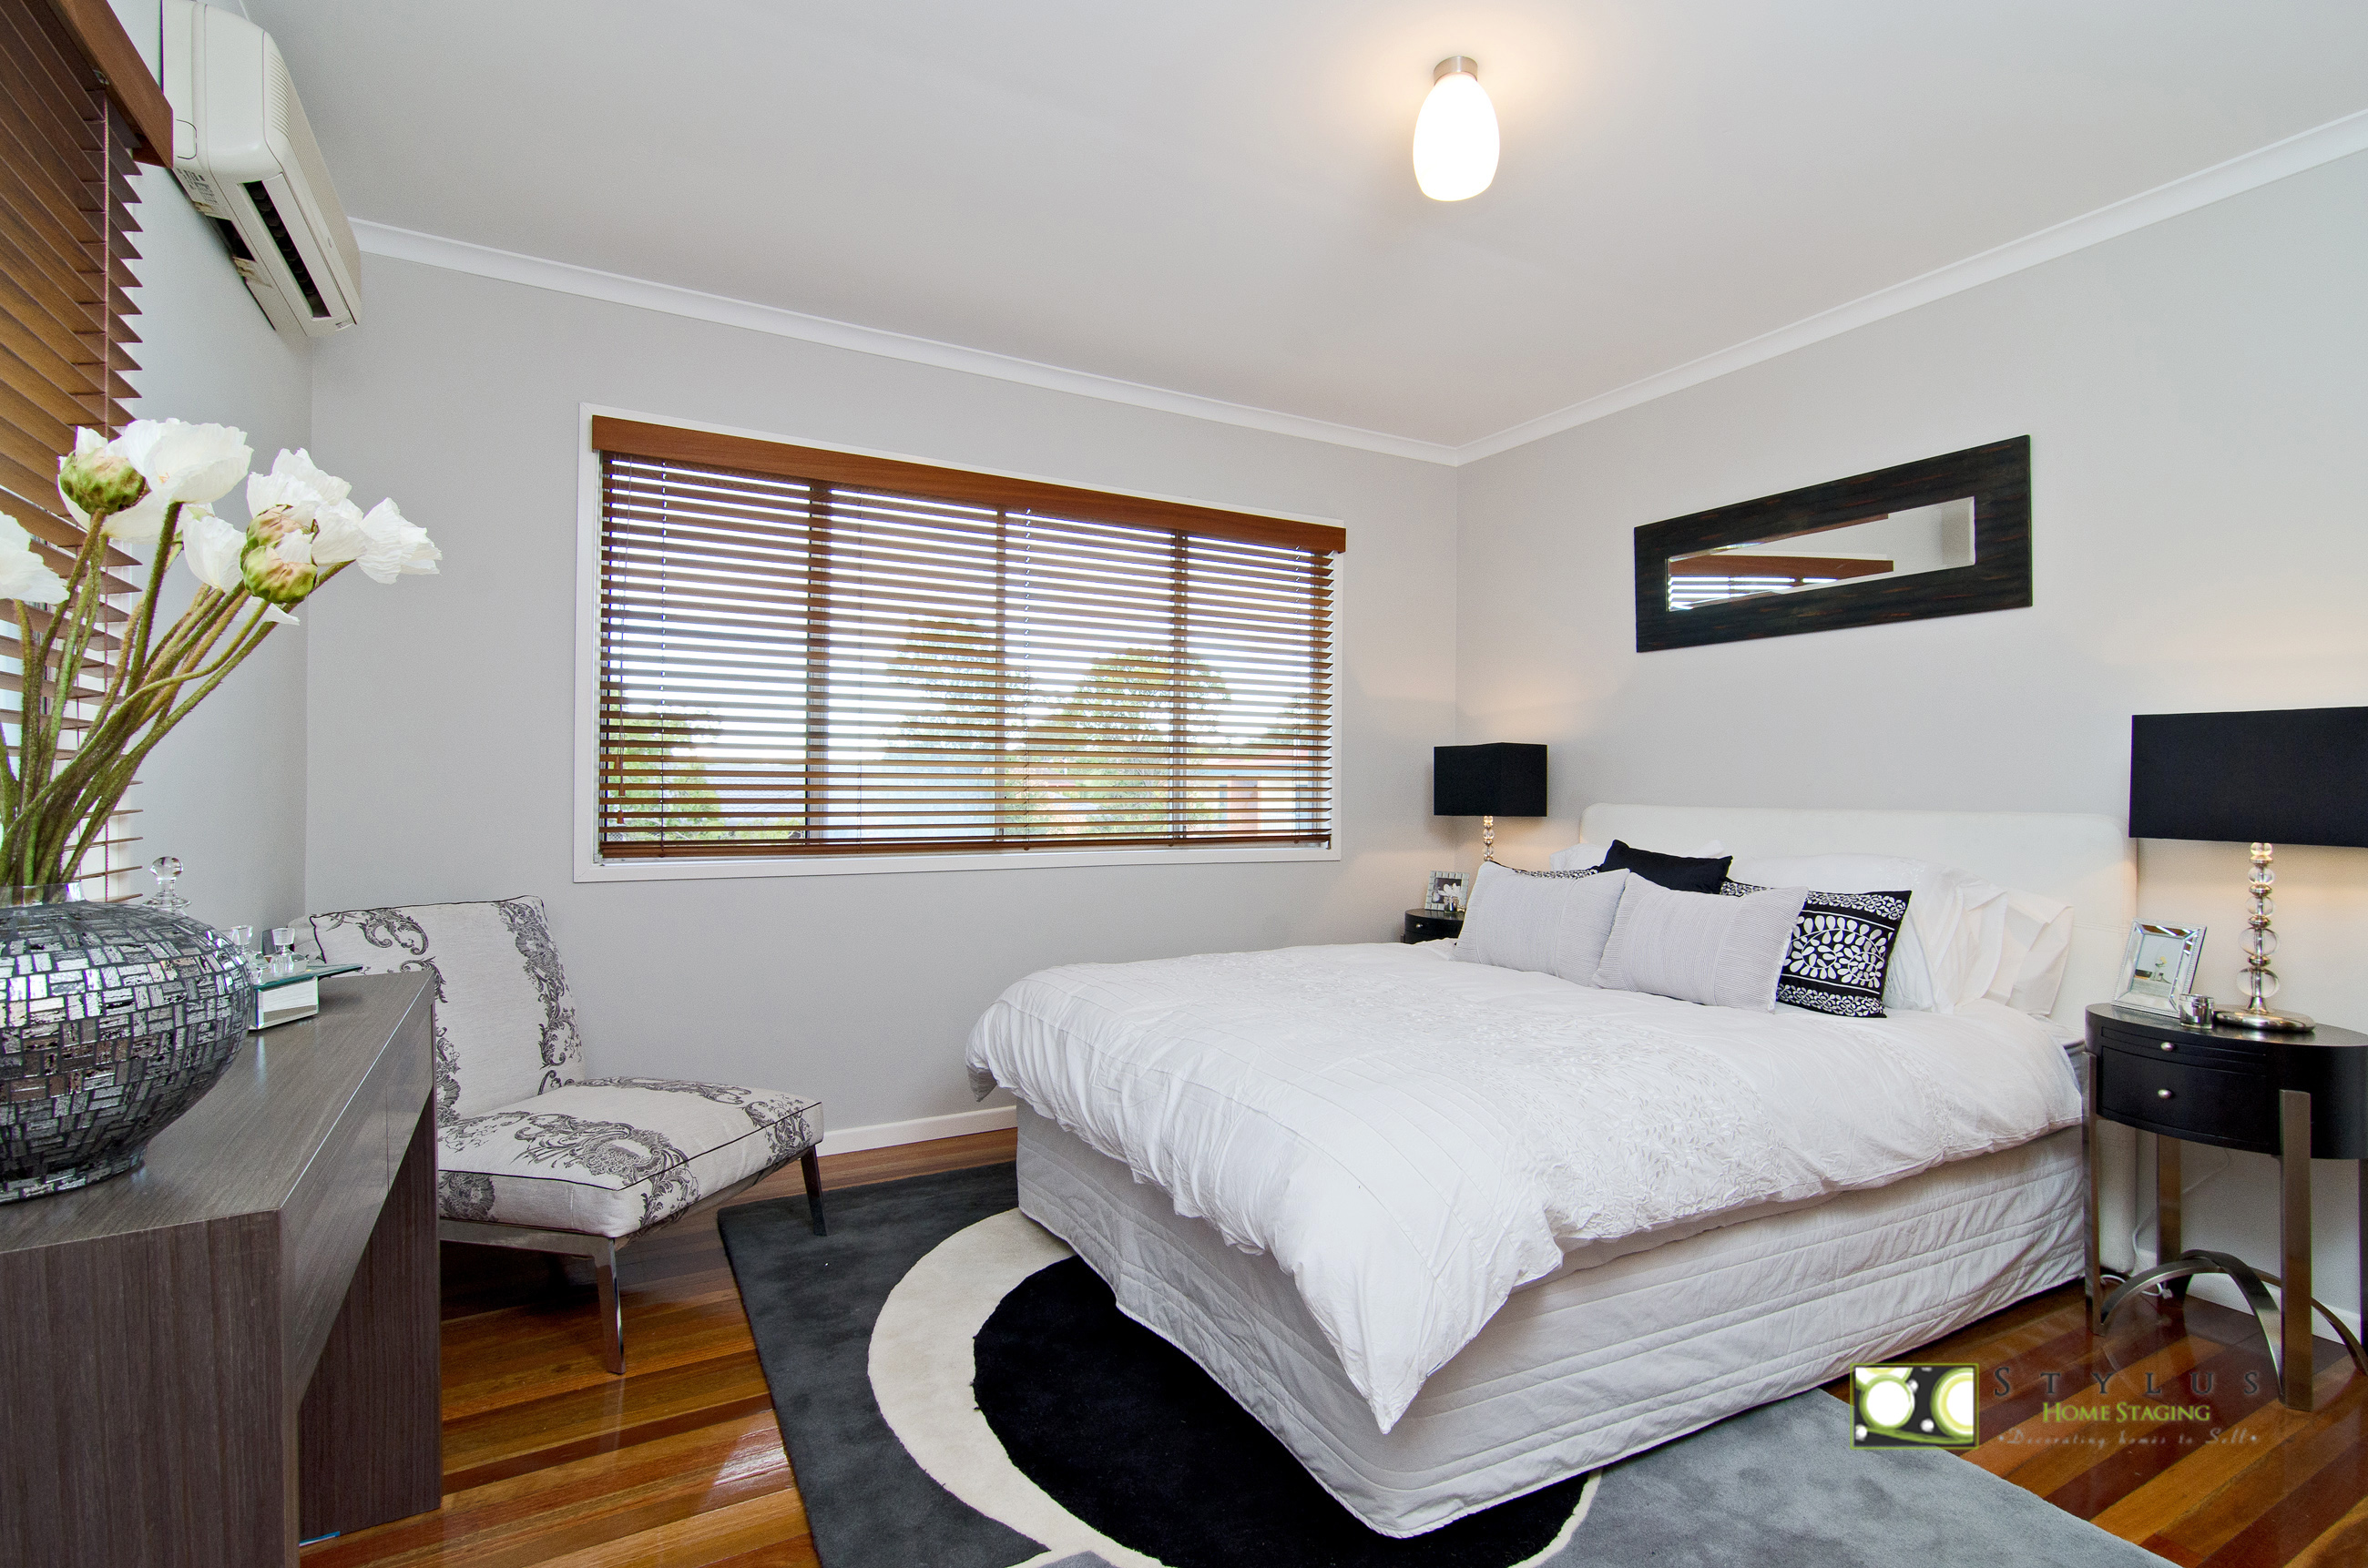 Property Styling Before And After Stylus Home Staging Stylus Home Staging